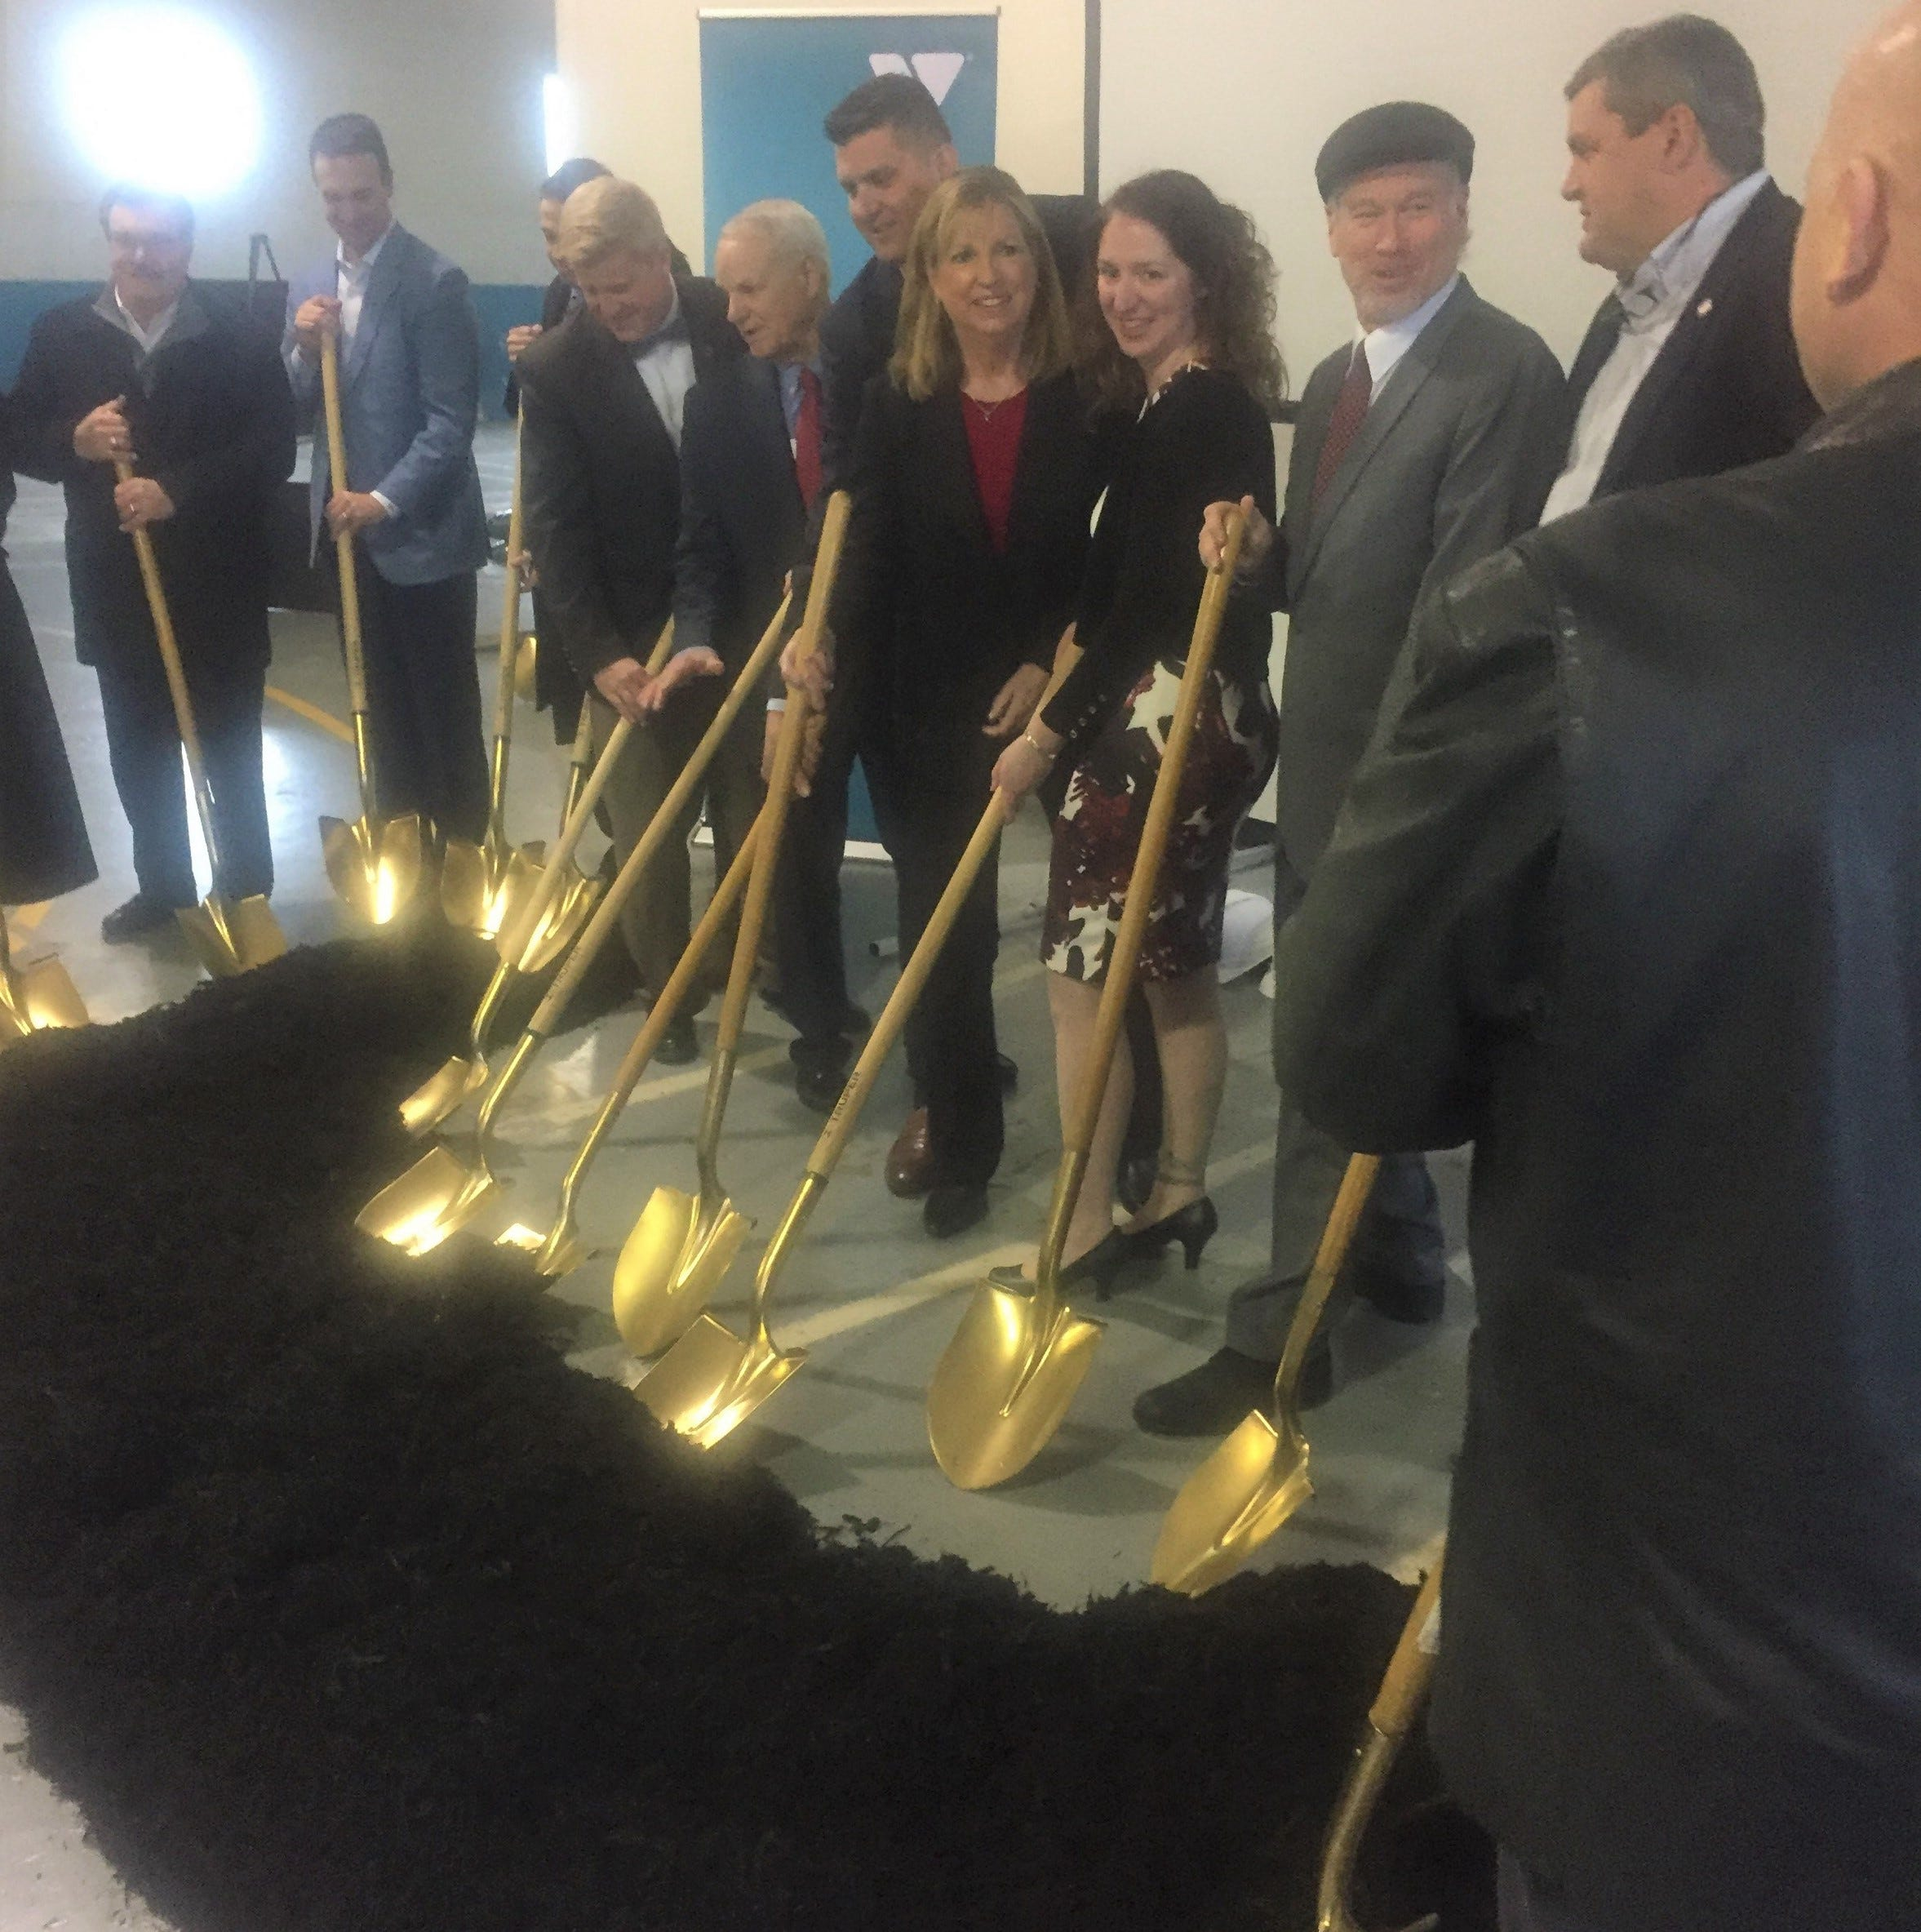 Western Y Branch in Pataskala breaks ground for major renovation